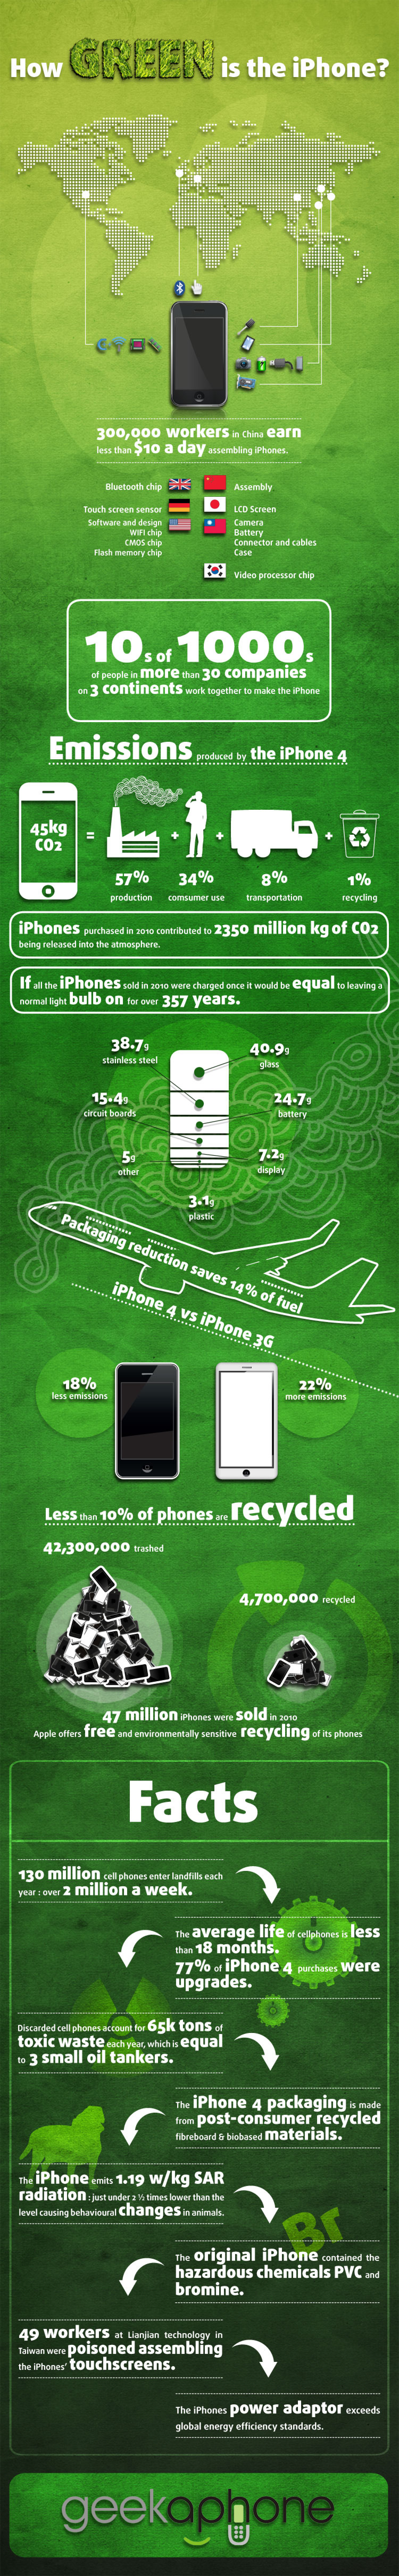 Is the iPhone Green? Infographic